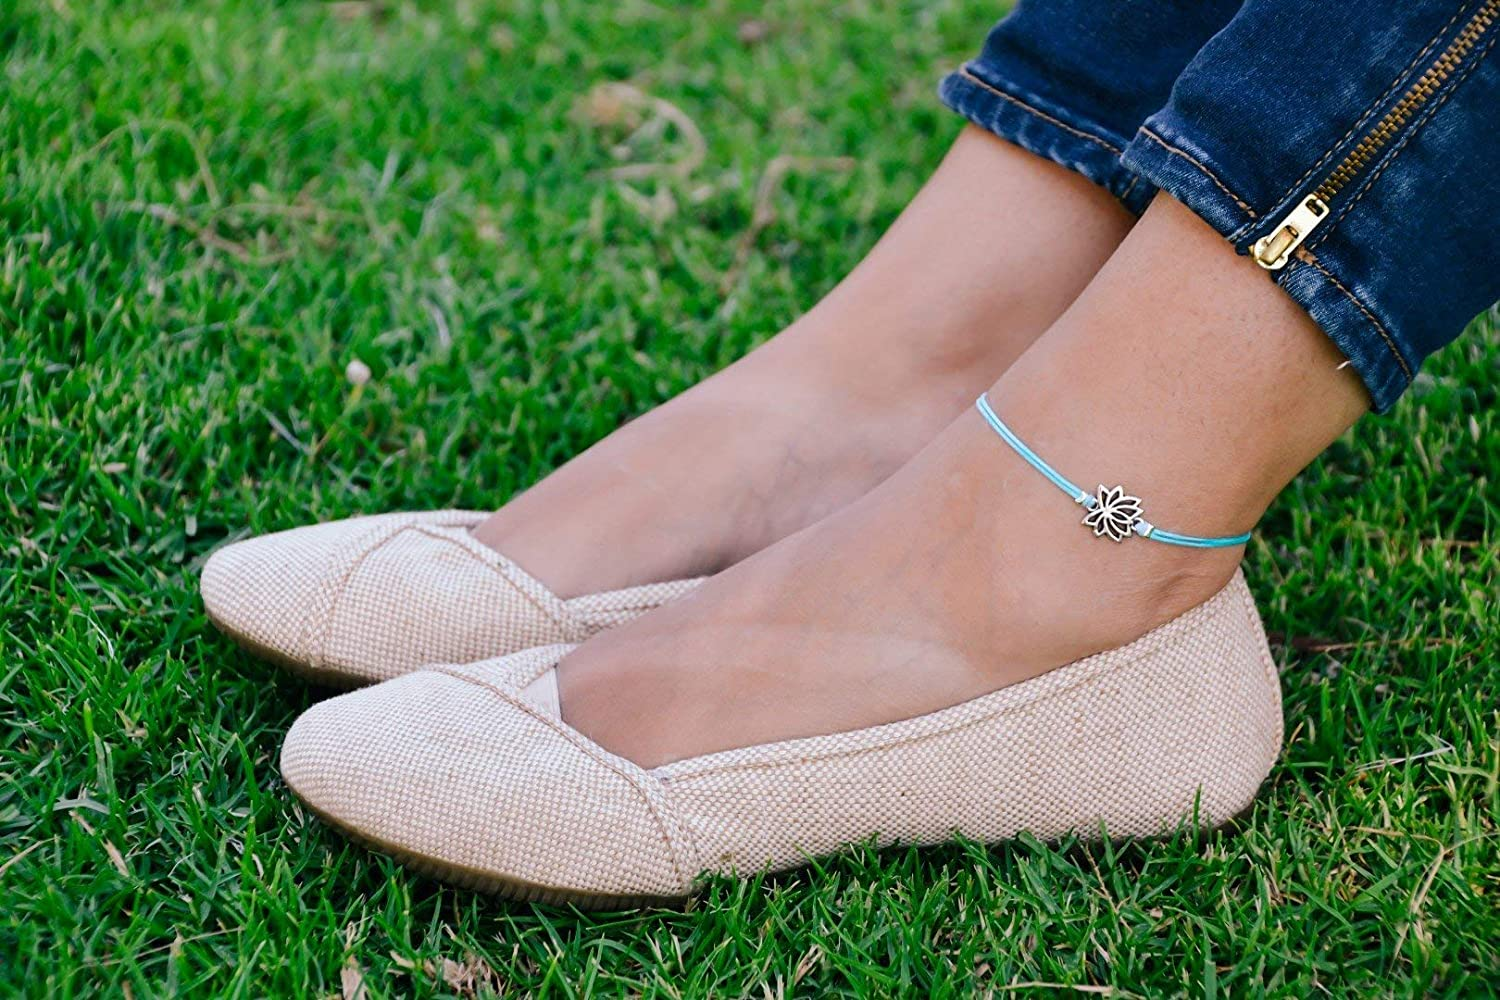 Lotus anklet Low 100% quality warranty! price blue ankle bracelet buddh lotus with charm silver